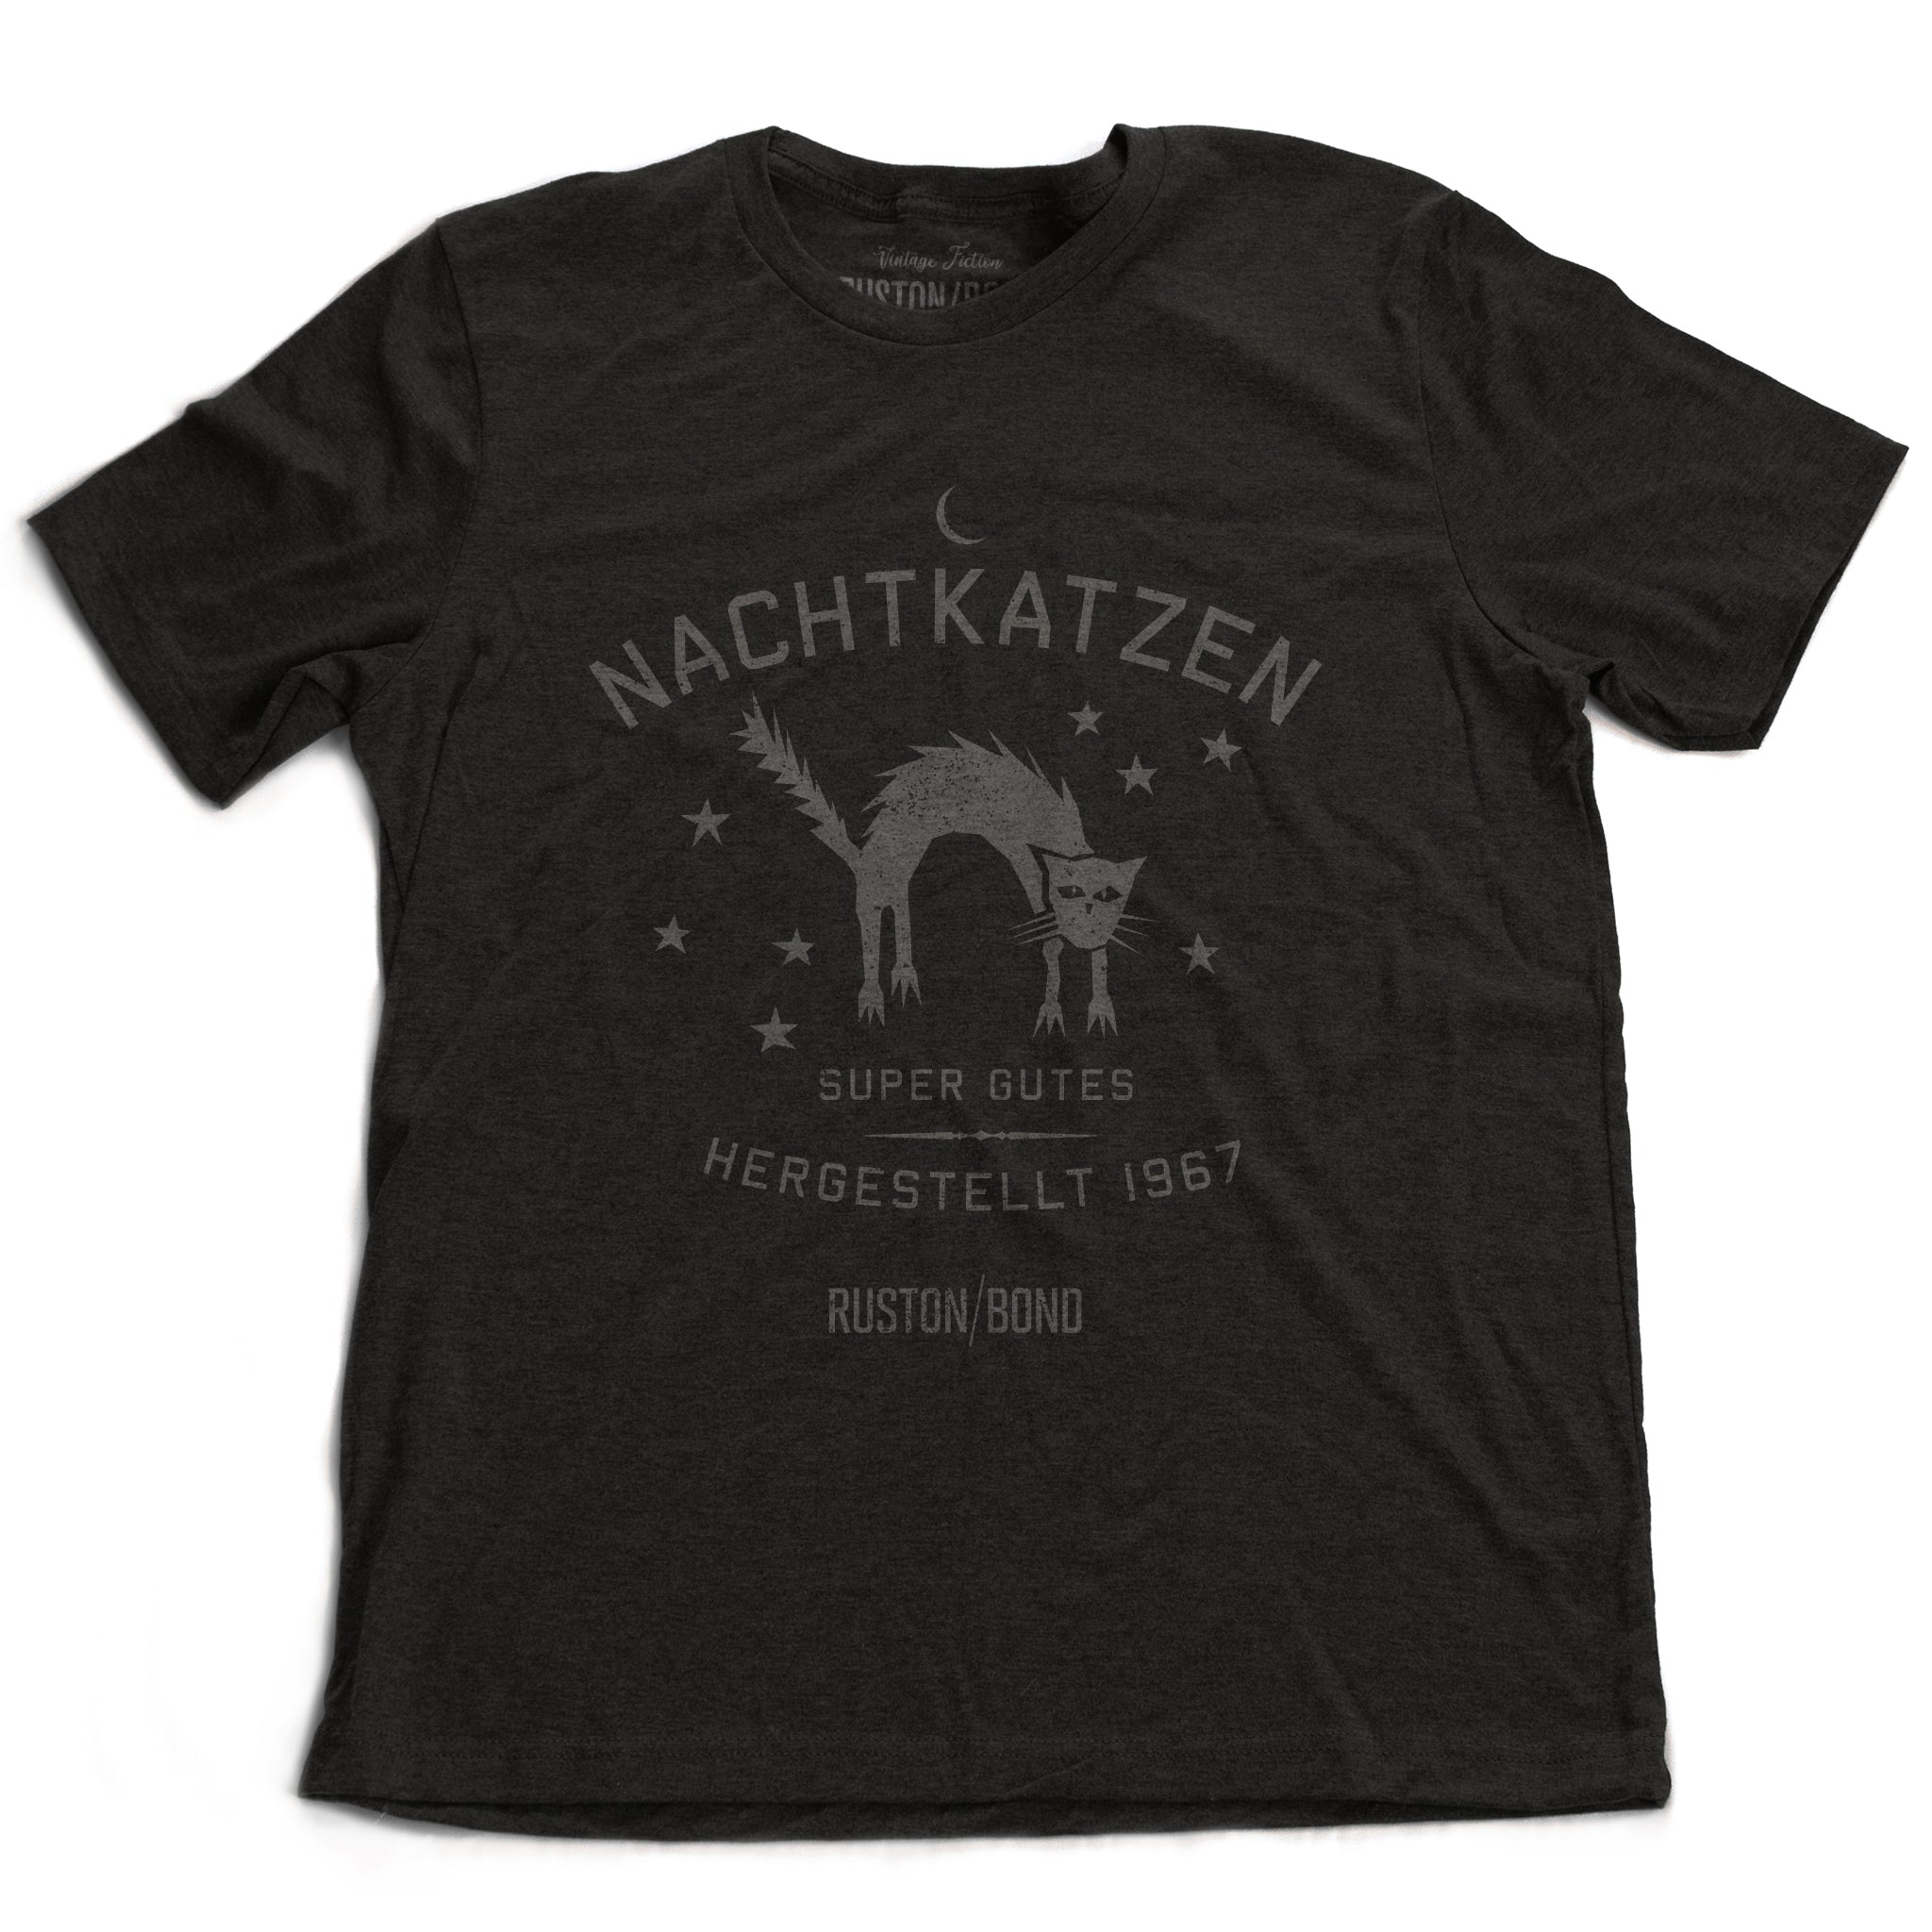 "A vintage-inspired retro design graphic t-shirt in Dark Gray Heather, featuring the image of an arched cat among stars, and the German text ""NACHTKATZEN, Super Gutes"" — translating to ""Night Cats, super good"" and the year 1967, with the Ruston/Bond logo beneath. From wolfsaint.net"